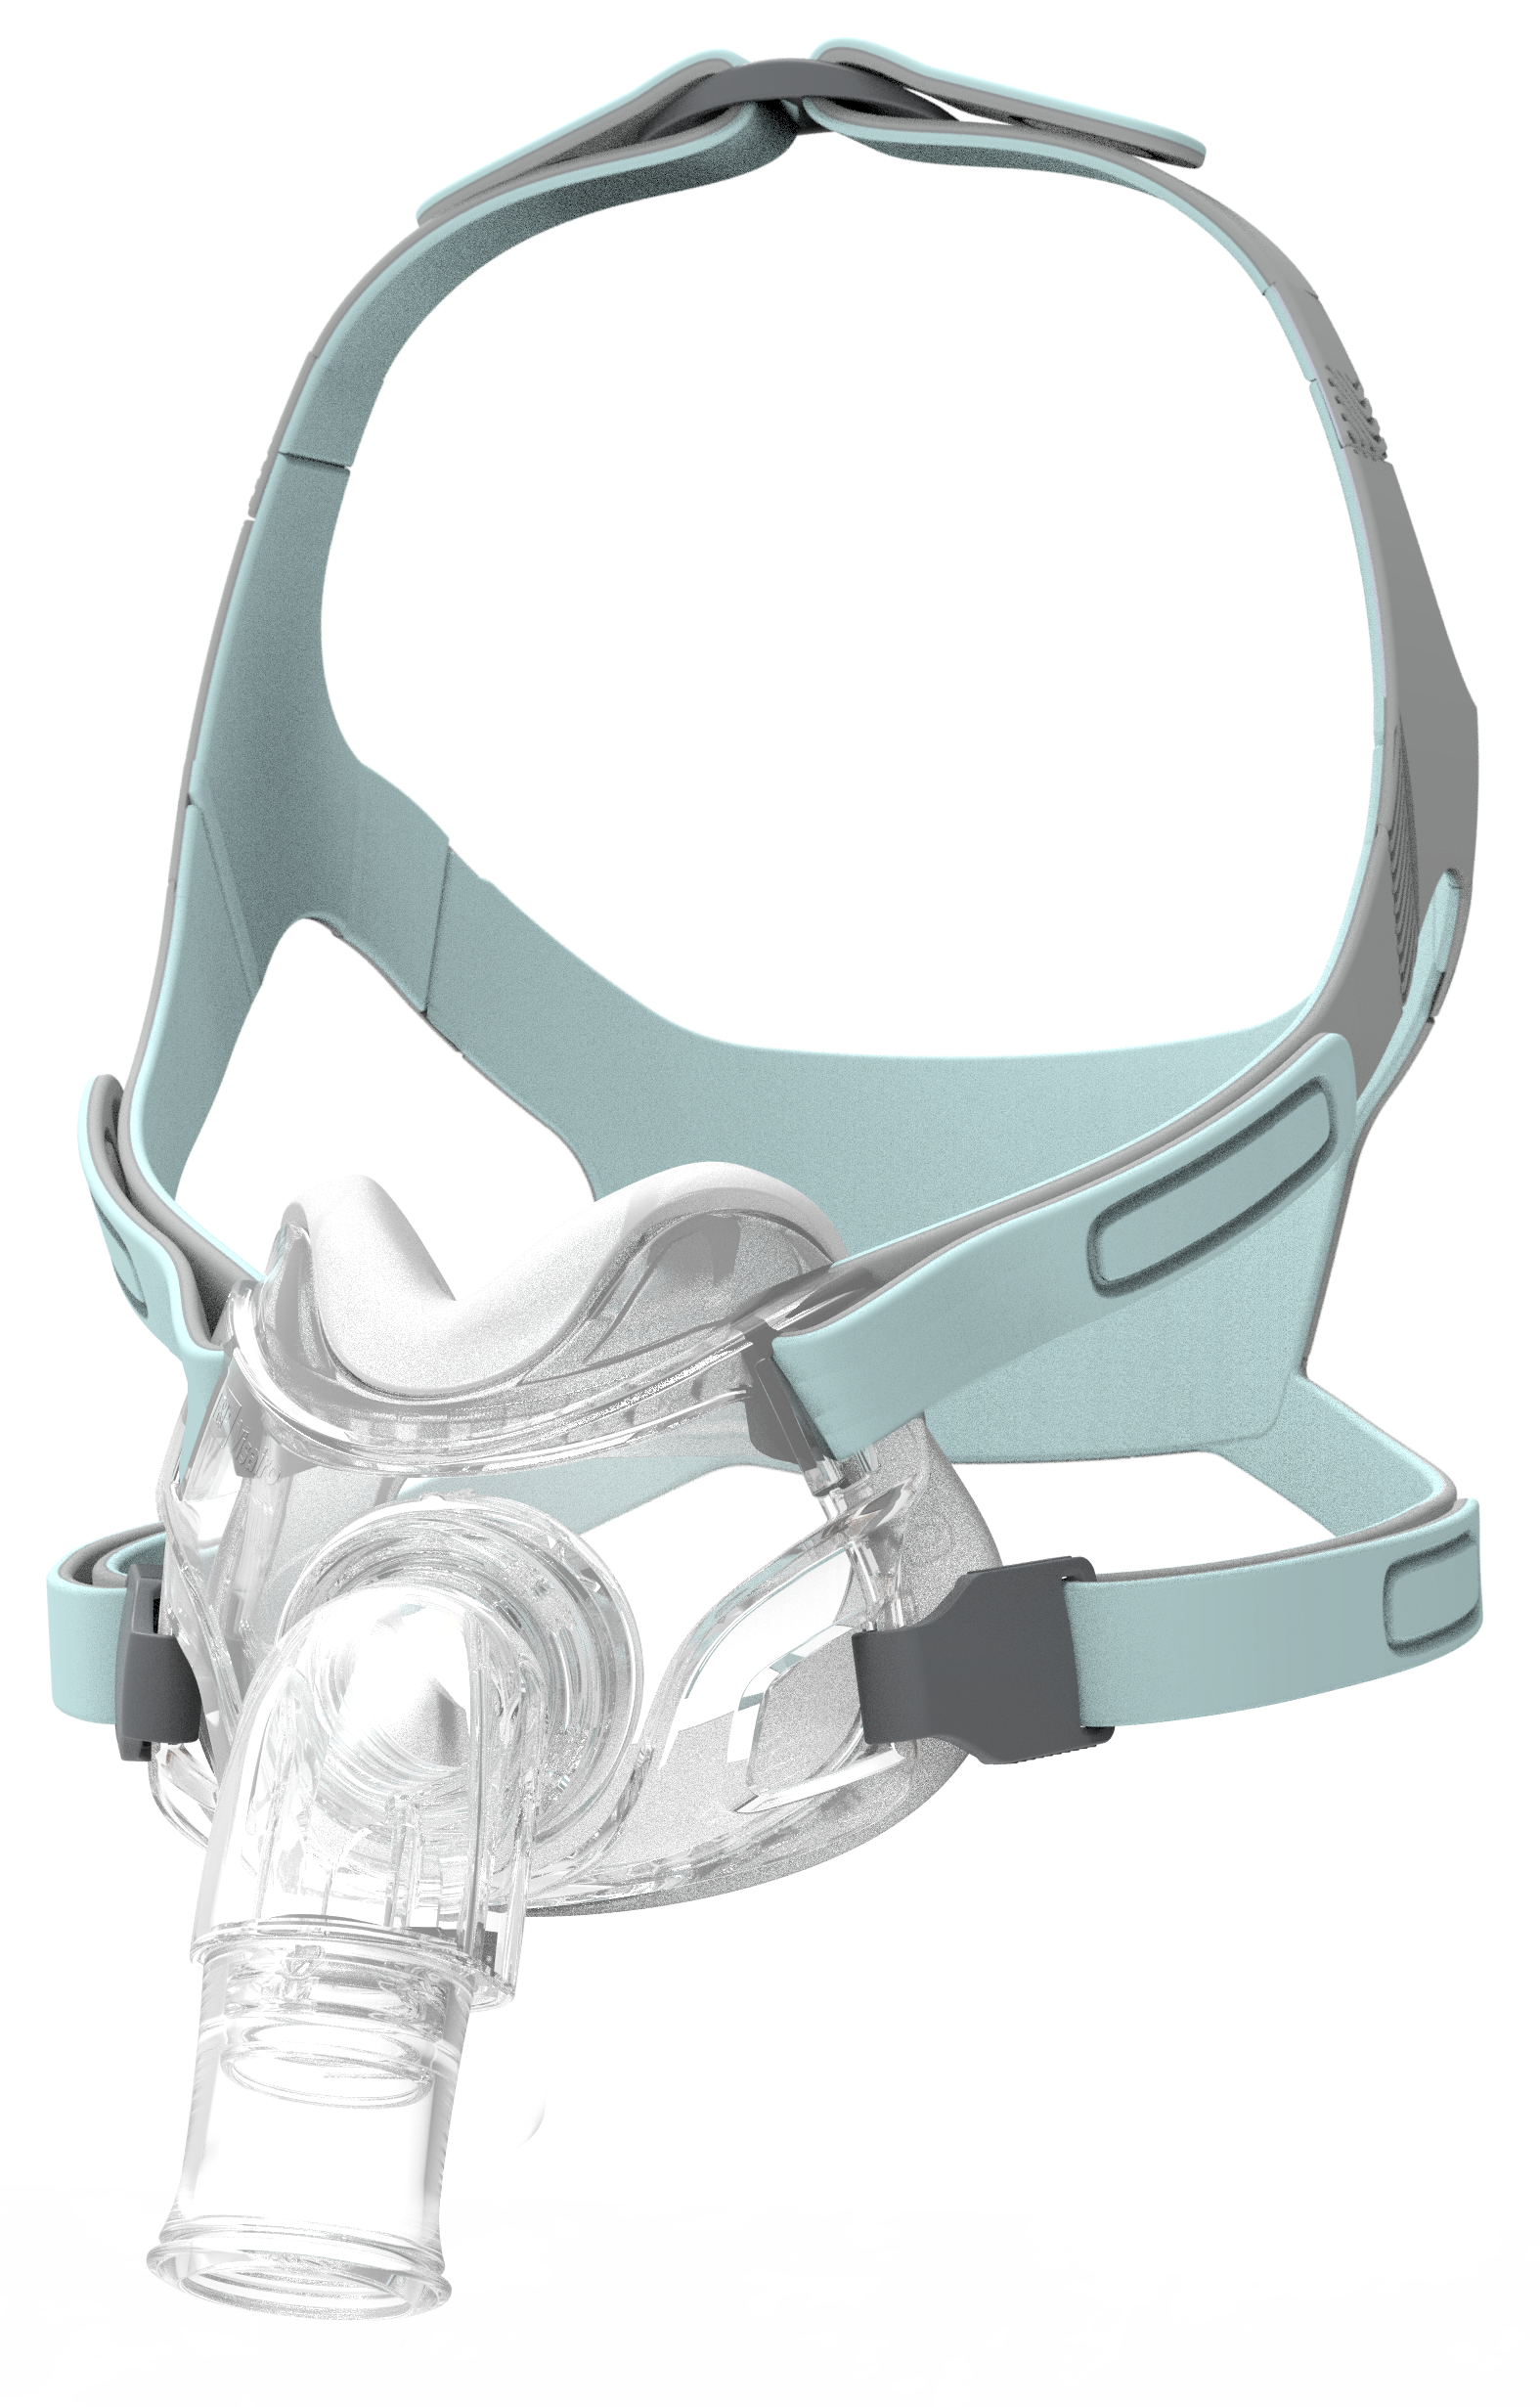 Non-vented Hospital Under Nose Mask with anti-asphyxiation valve